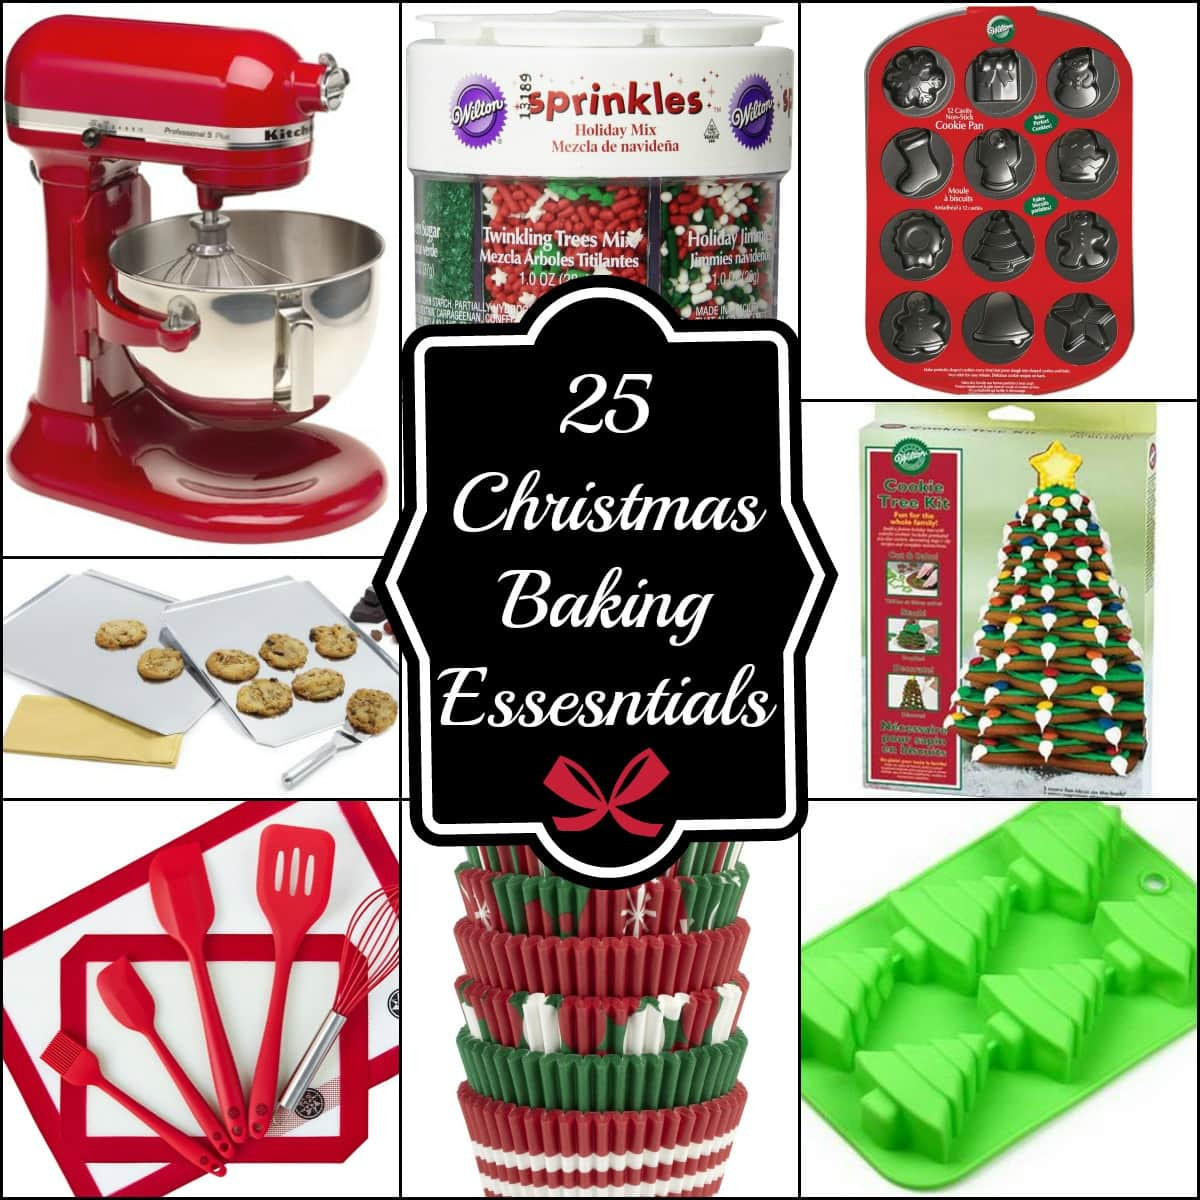 Holiday Baking Gift Ideas  25 Christmas Baking Essentials and Baking Gift Ideas